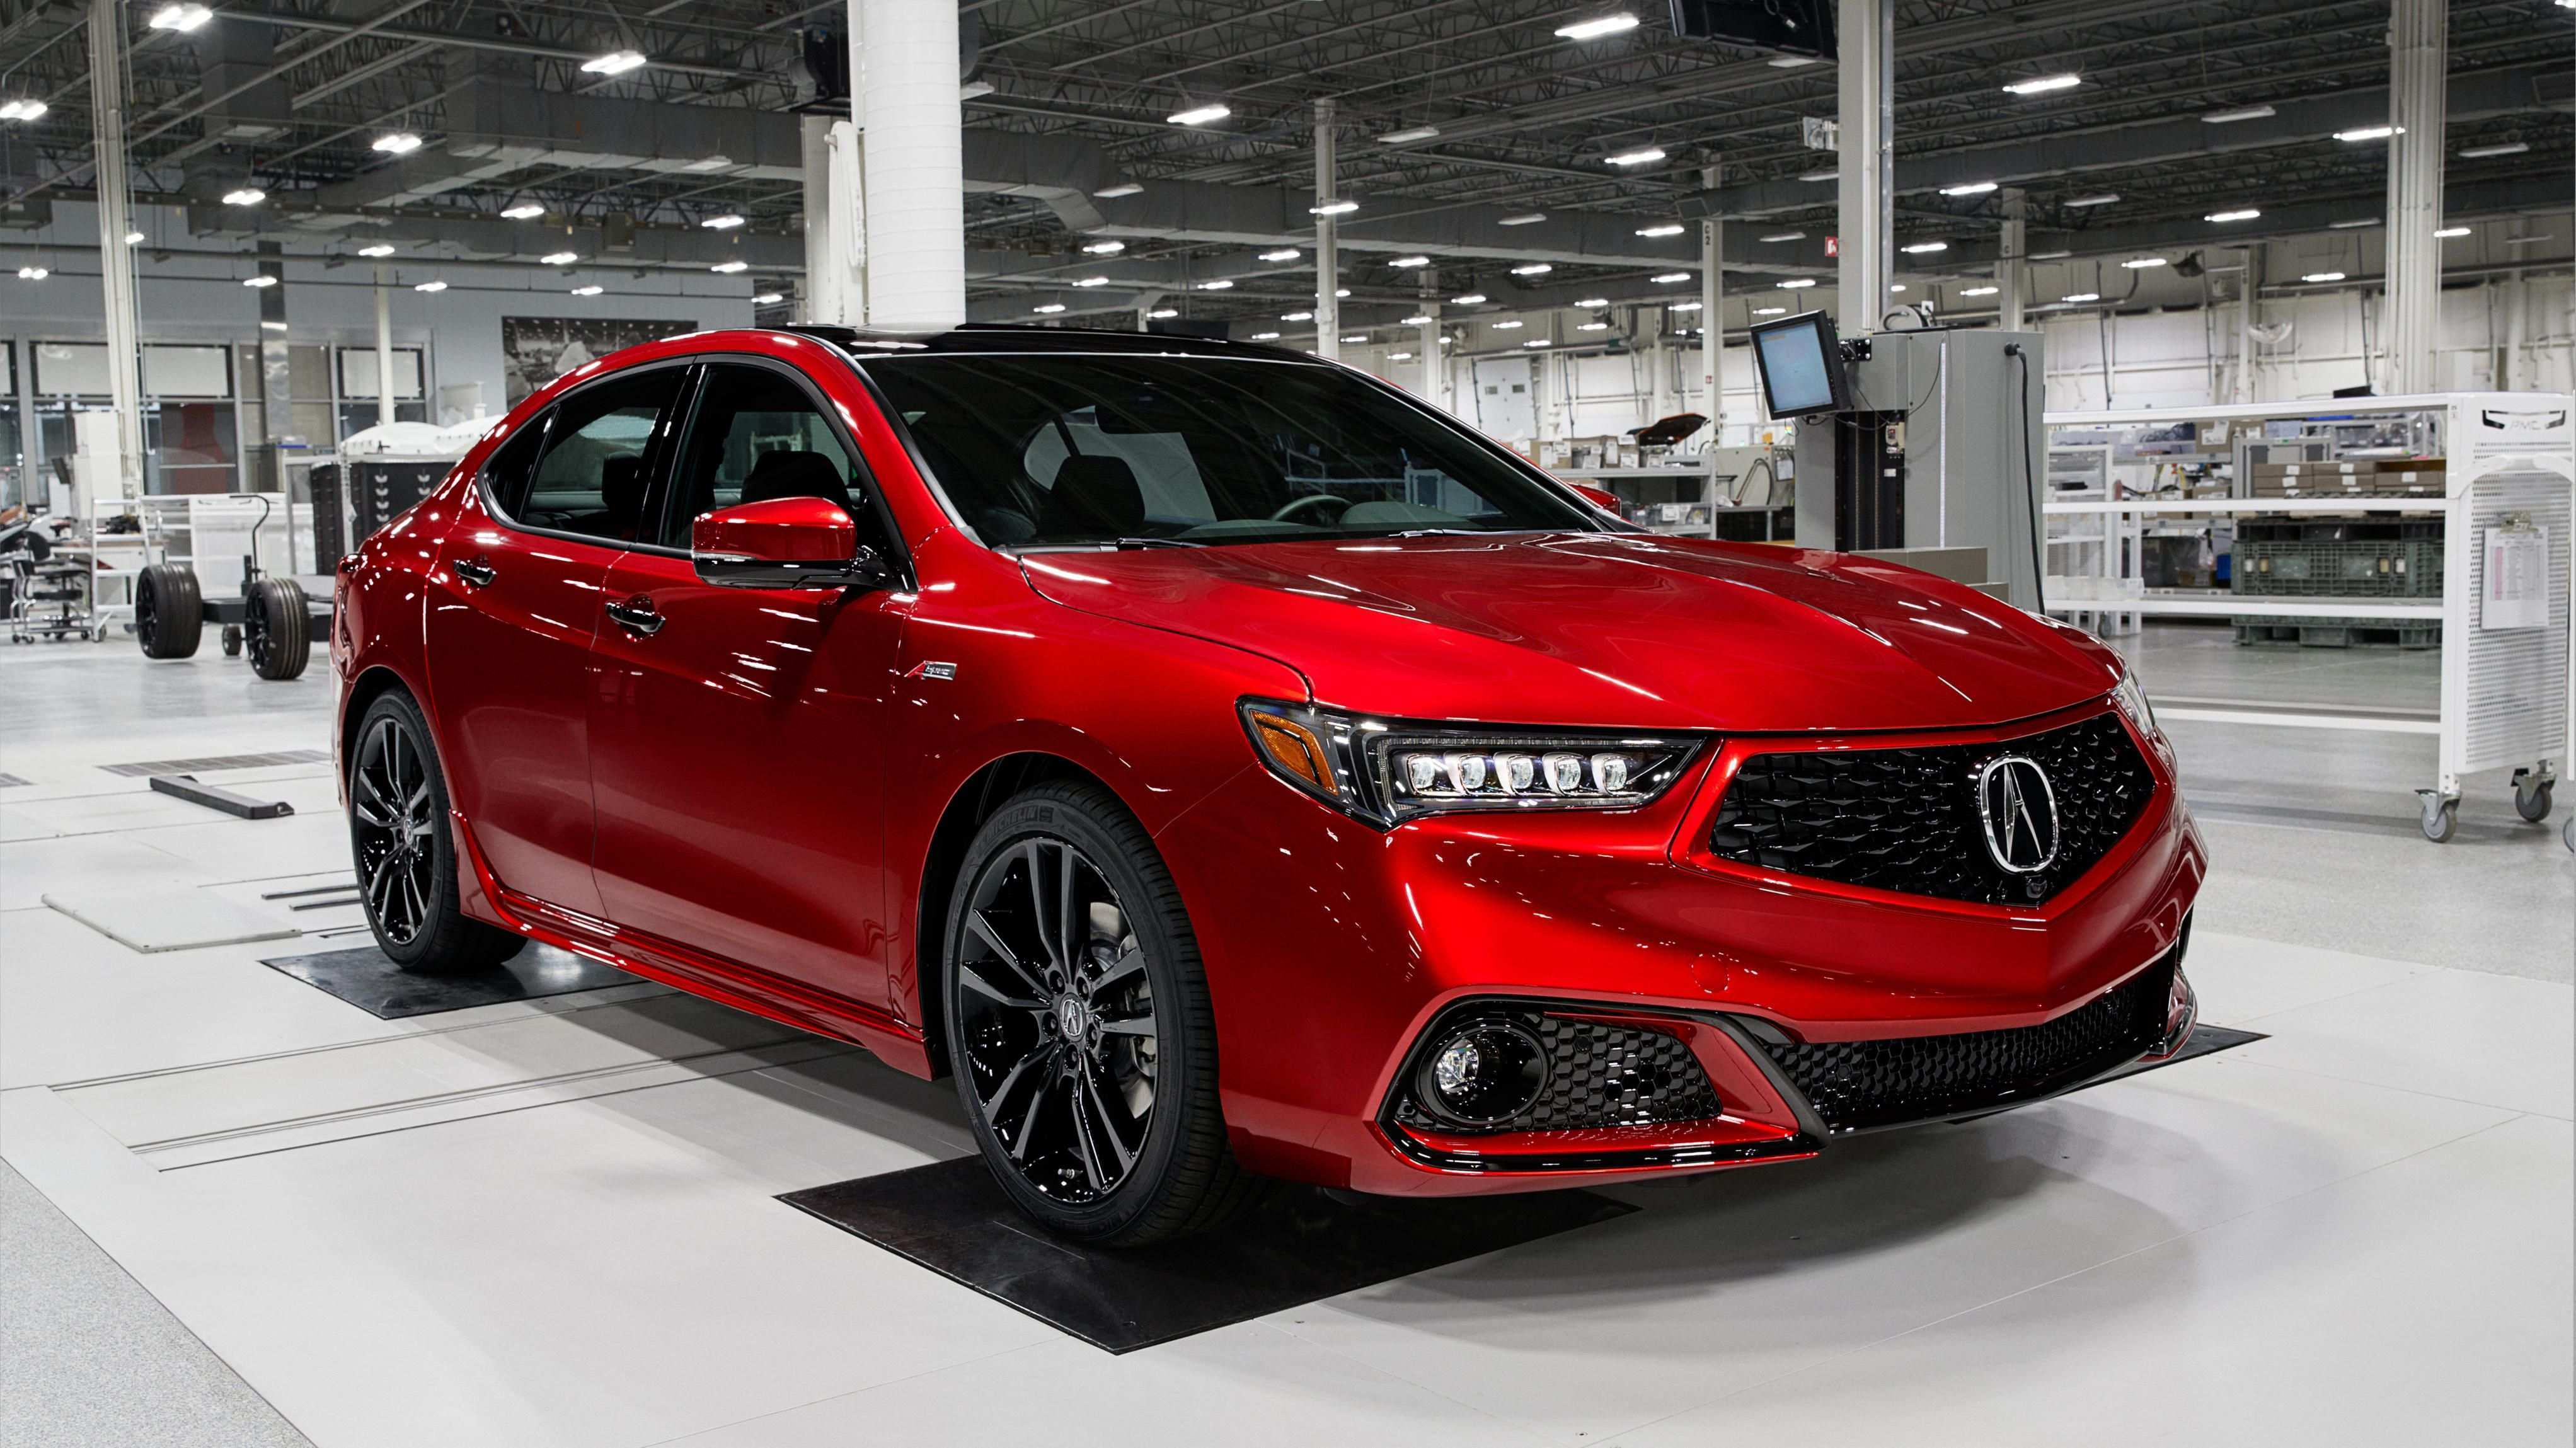 77 All New 2020 Acura Mdx Pmc Edition History